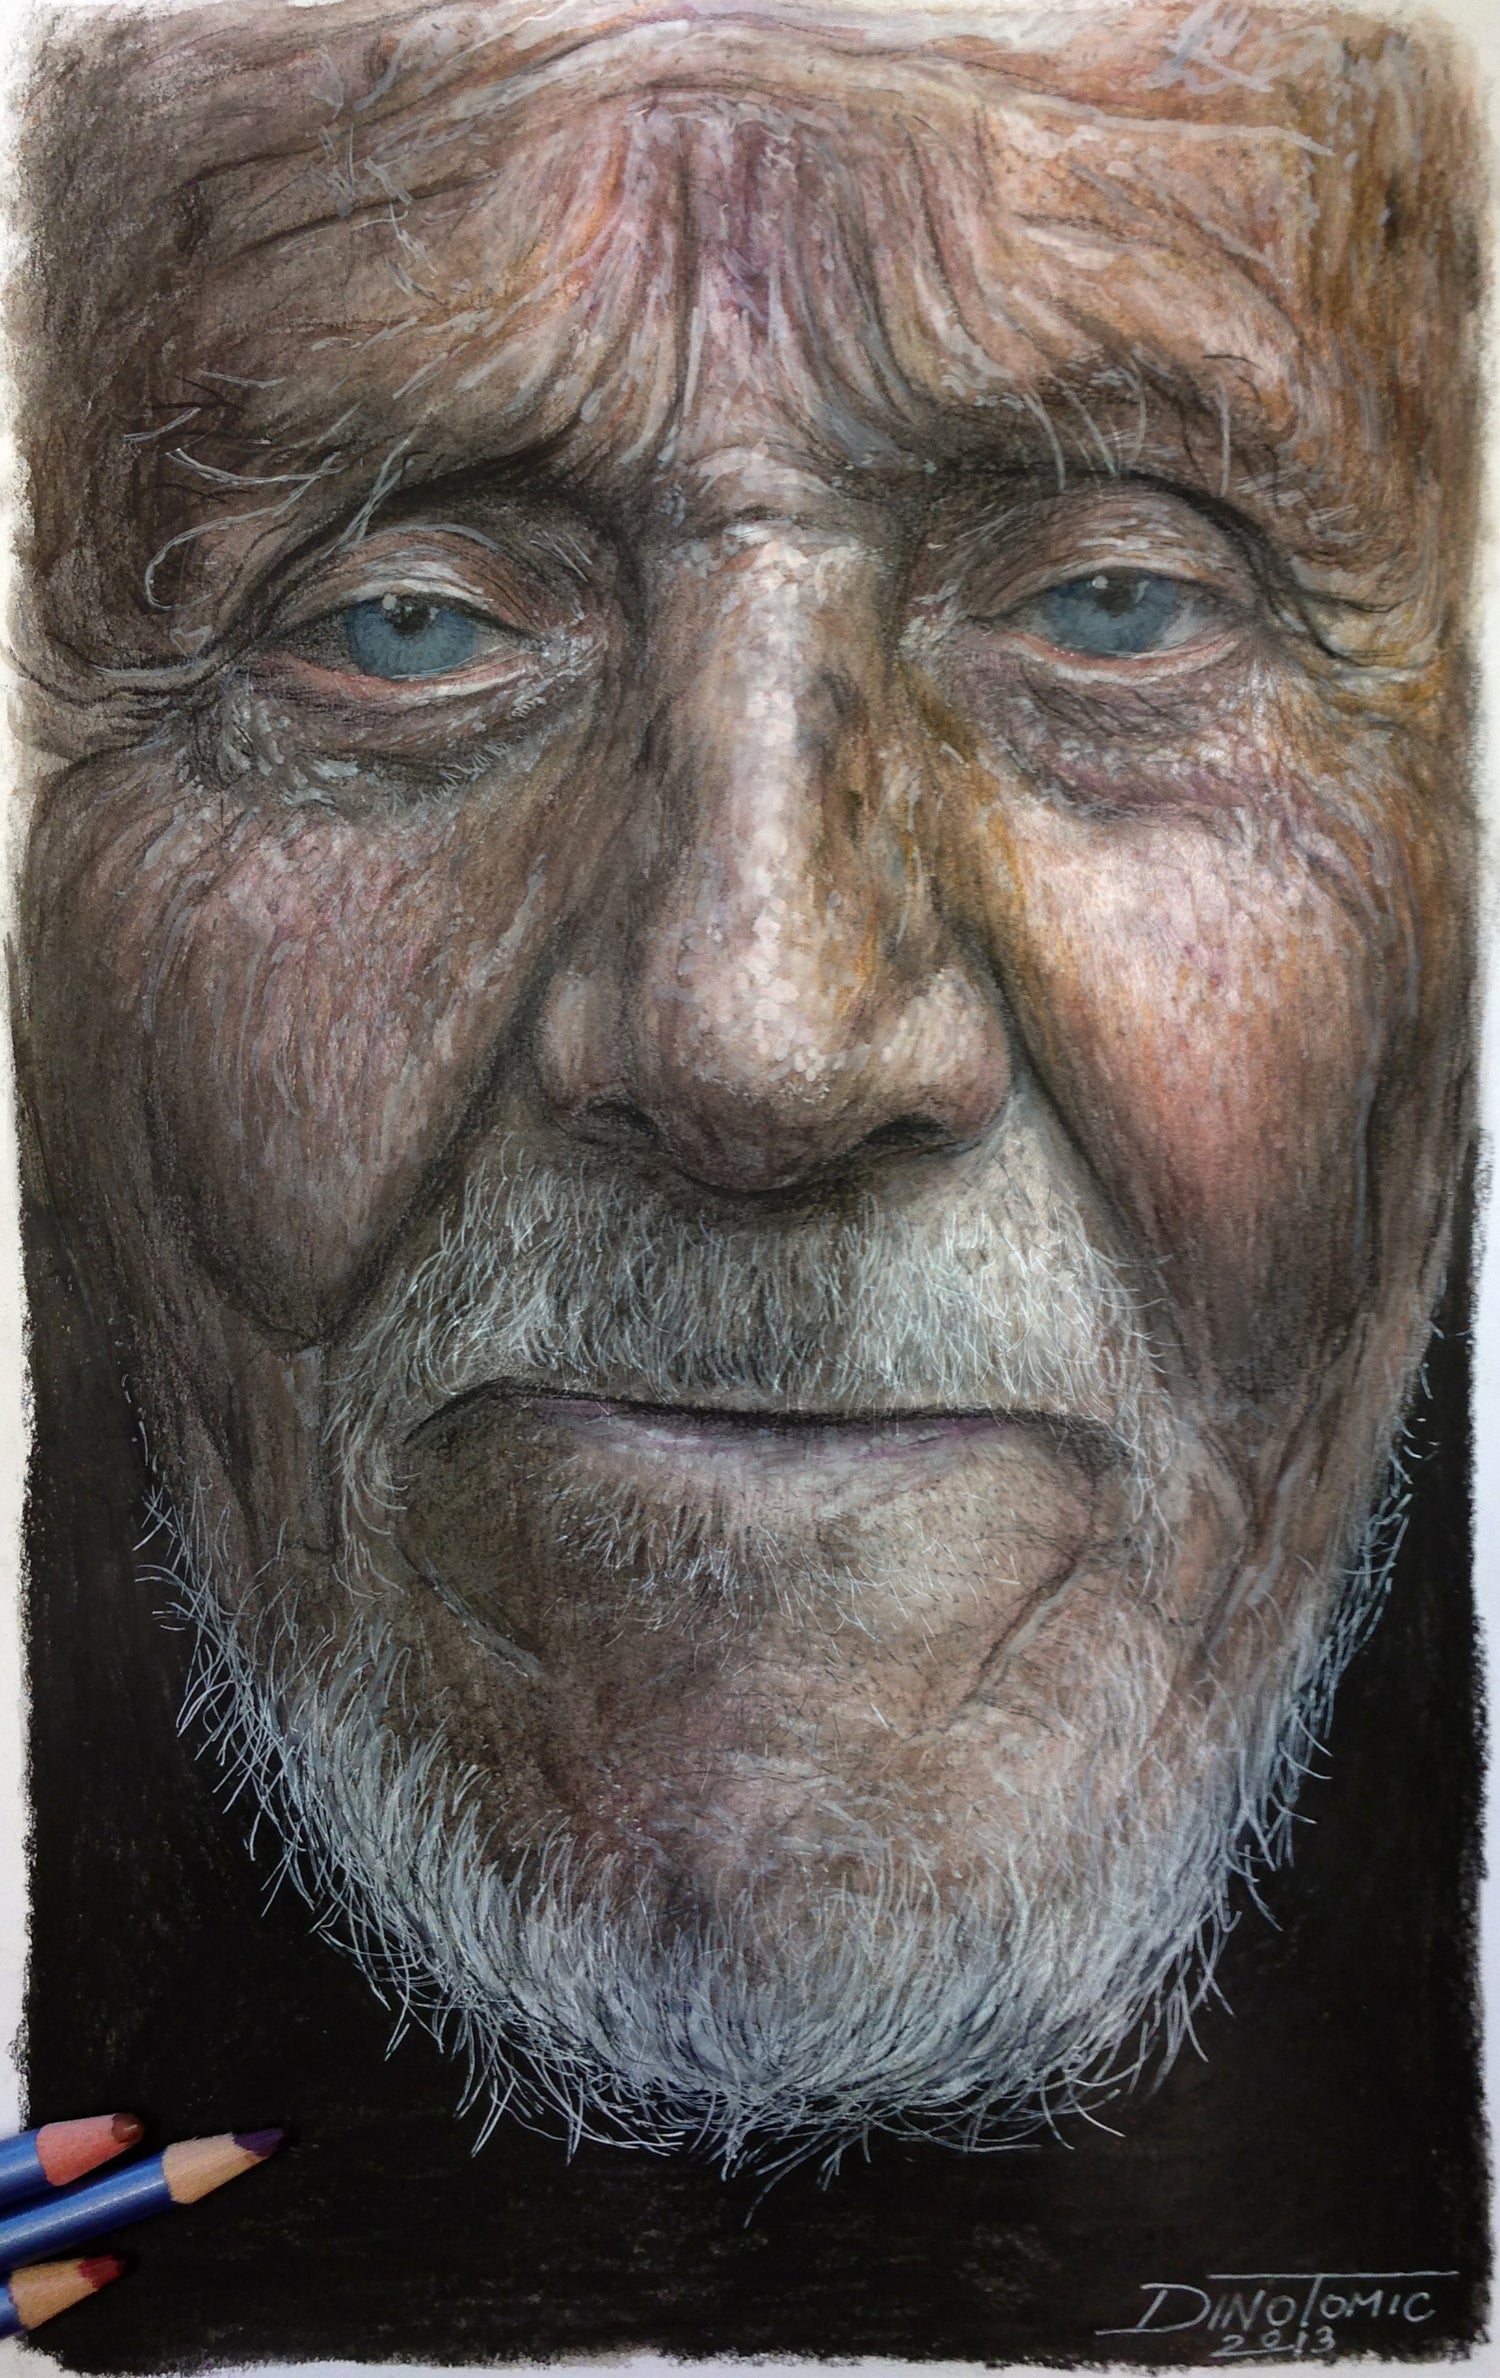 Image of #142 Old man